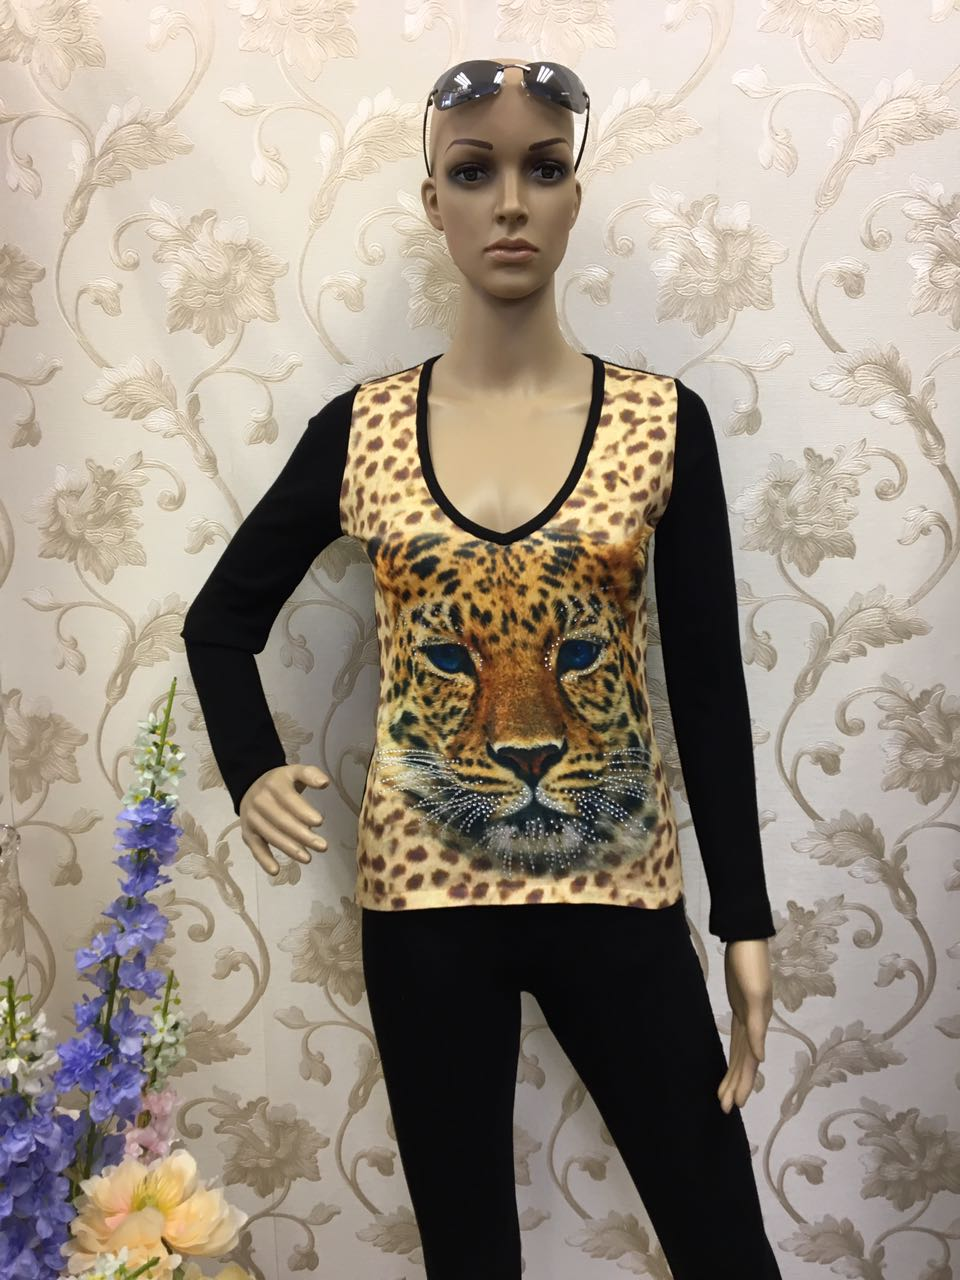 roberto-cavalli-leopard-print-jersey-with-silver-beads